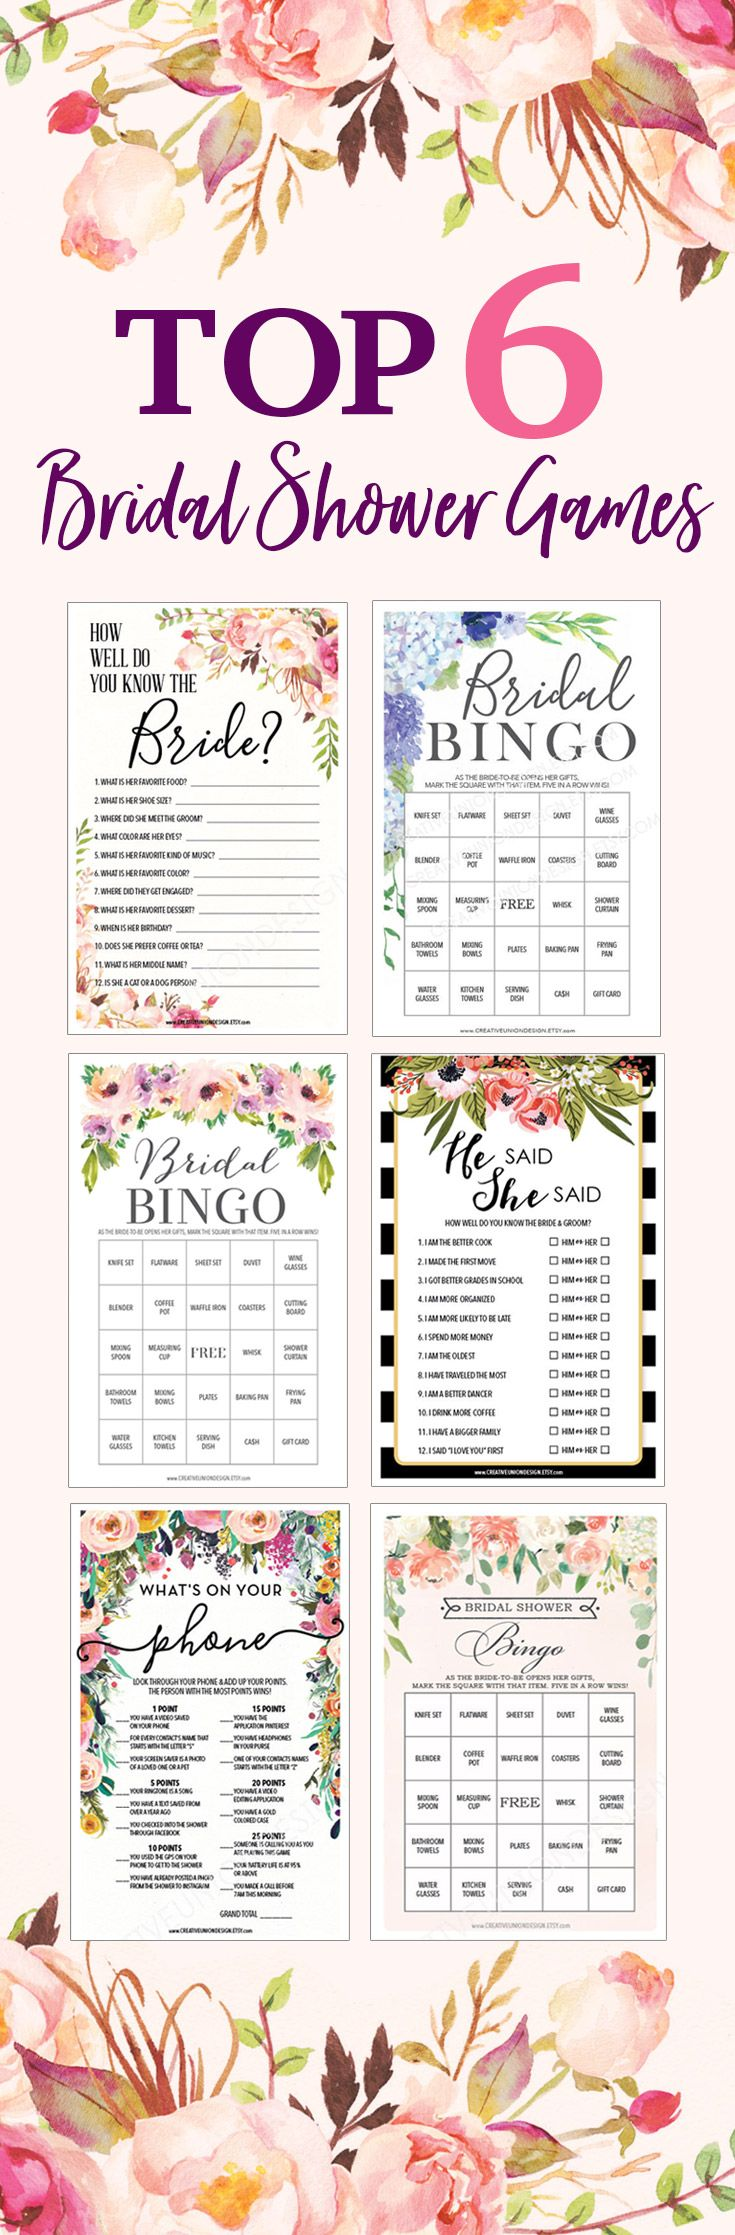 Looking for fun Bridal Shower ideas? Here are six of our most popular Bridal Shower Games that you can easily download, print & cut out in minutes. So fast and easy and will be a huge hit with friends & family at your shower! #bridalshowerideas #bridalshowergames